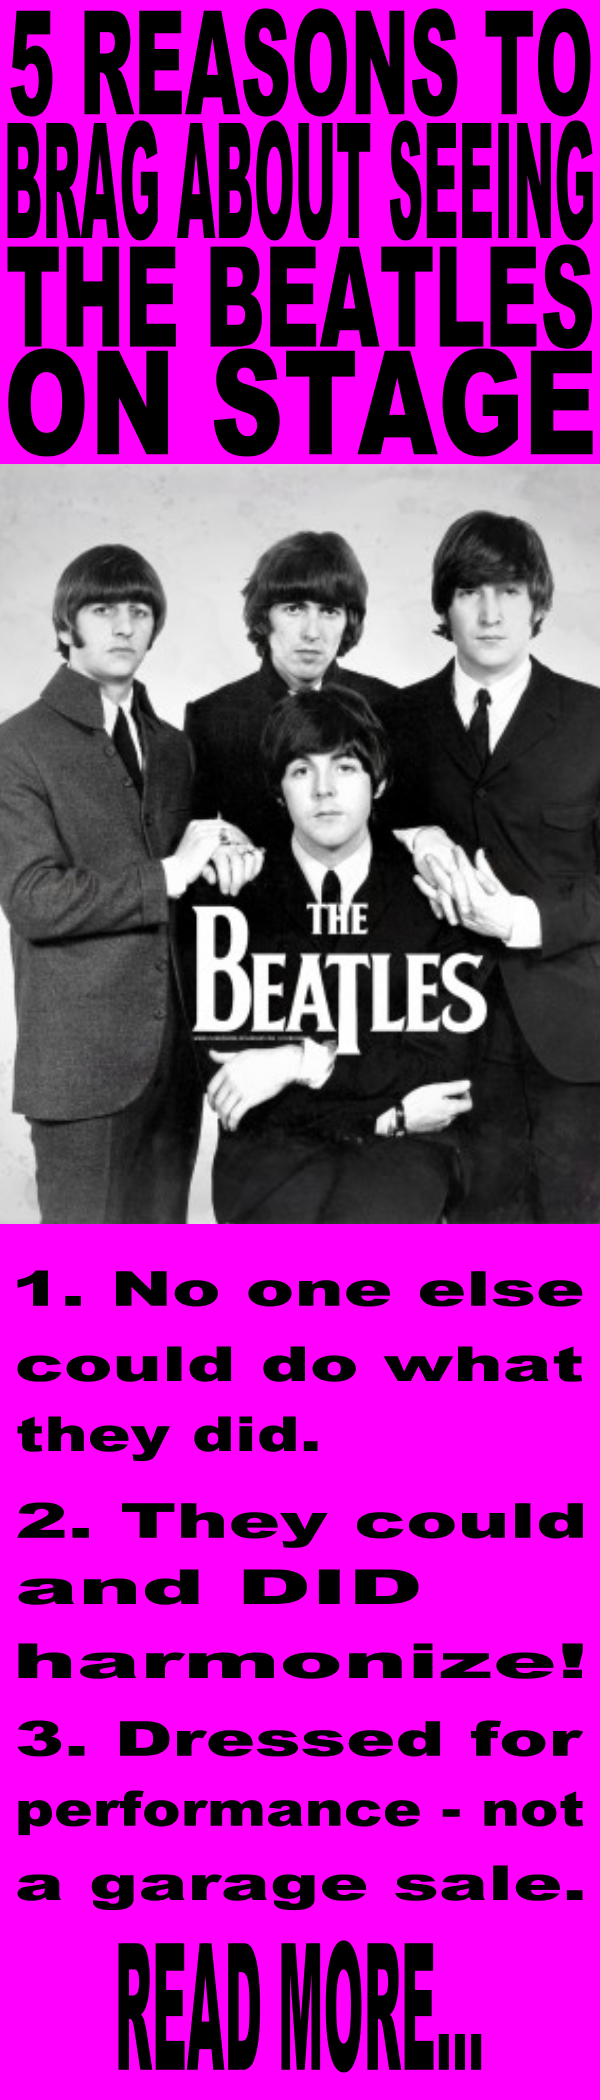 5 reasons to brag about seeing the beatles on stage  https://getcustomproducts.com